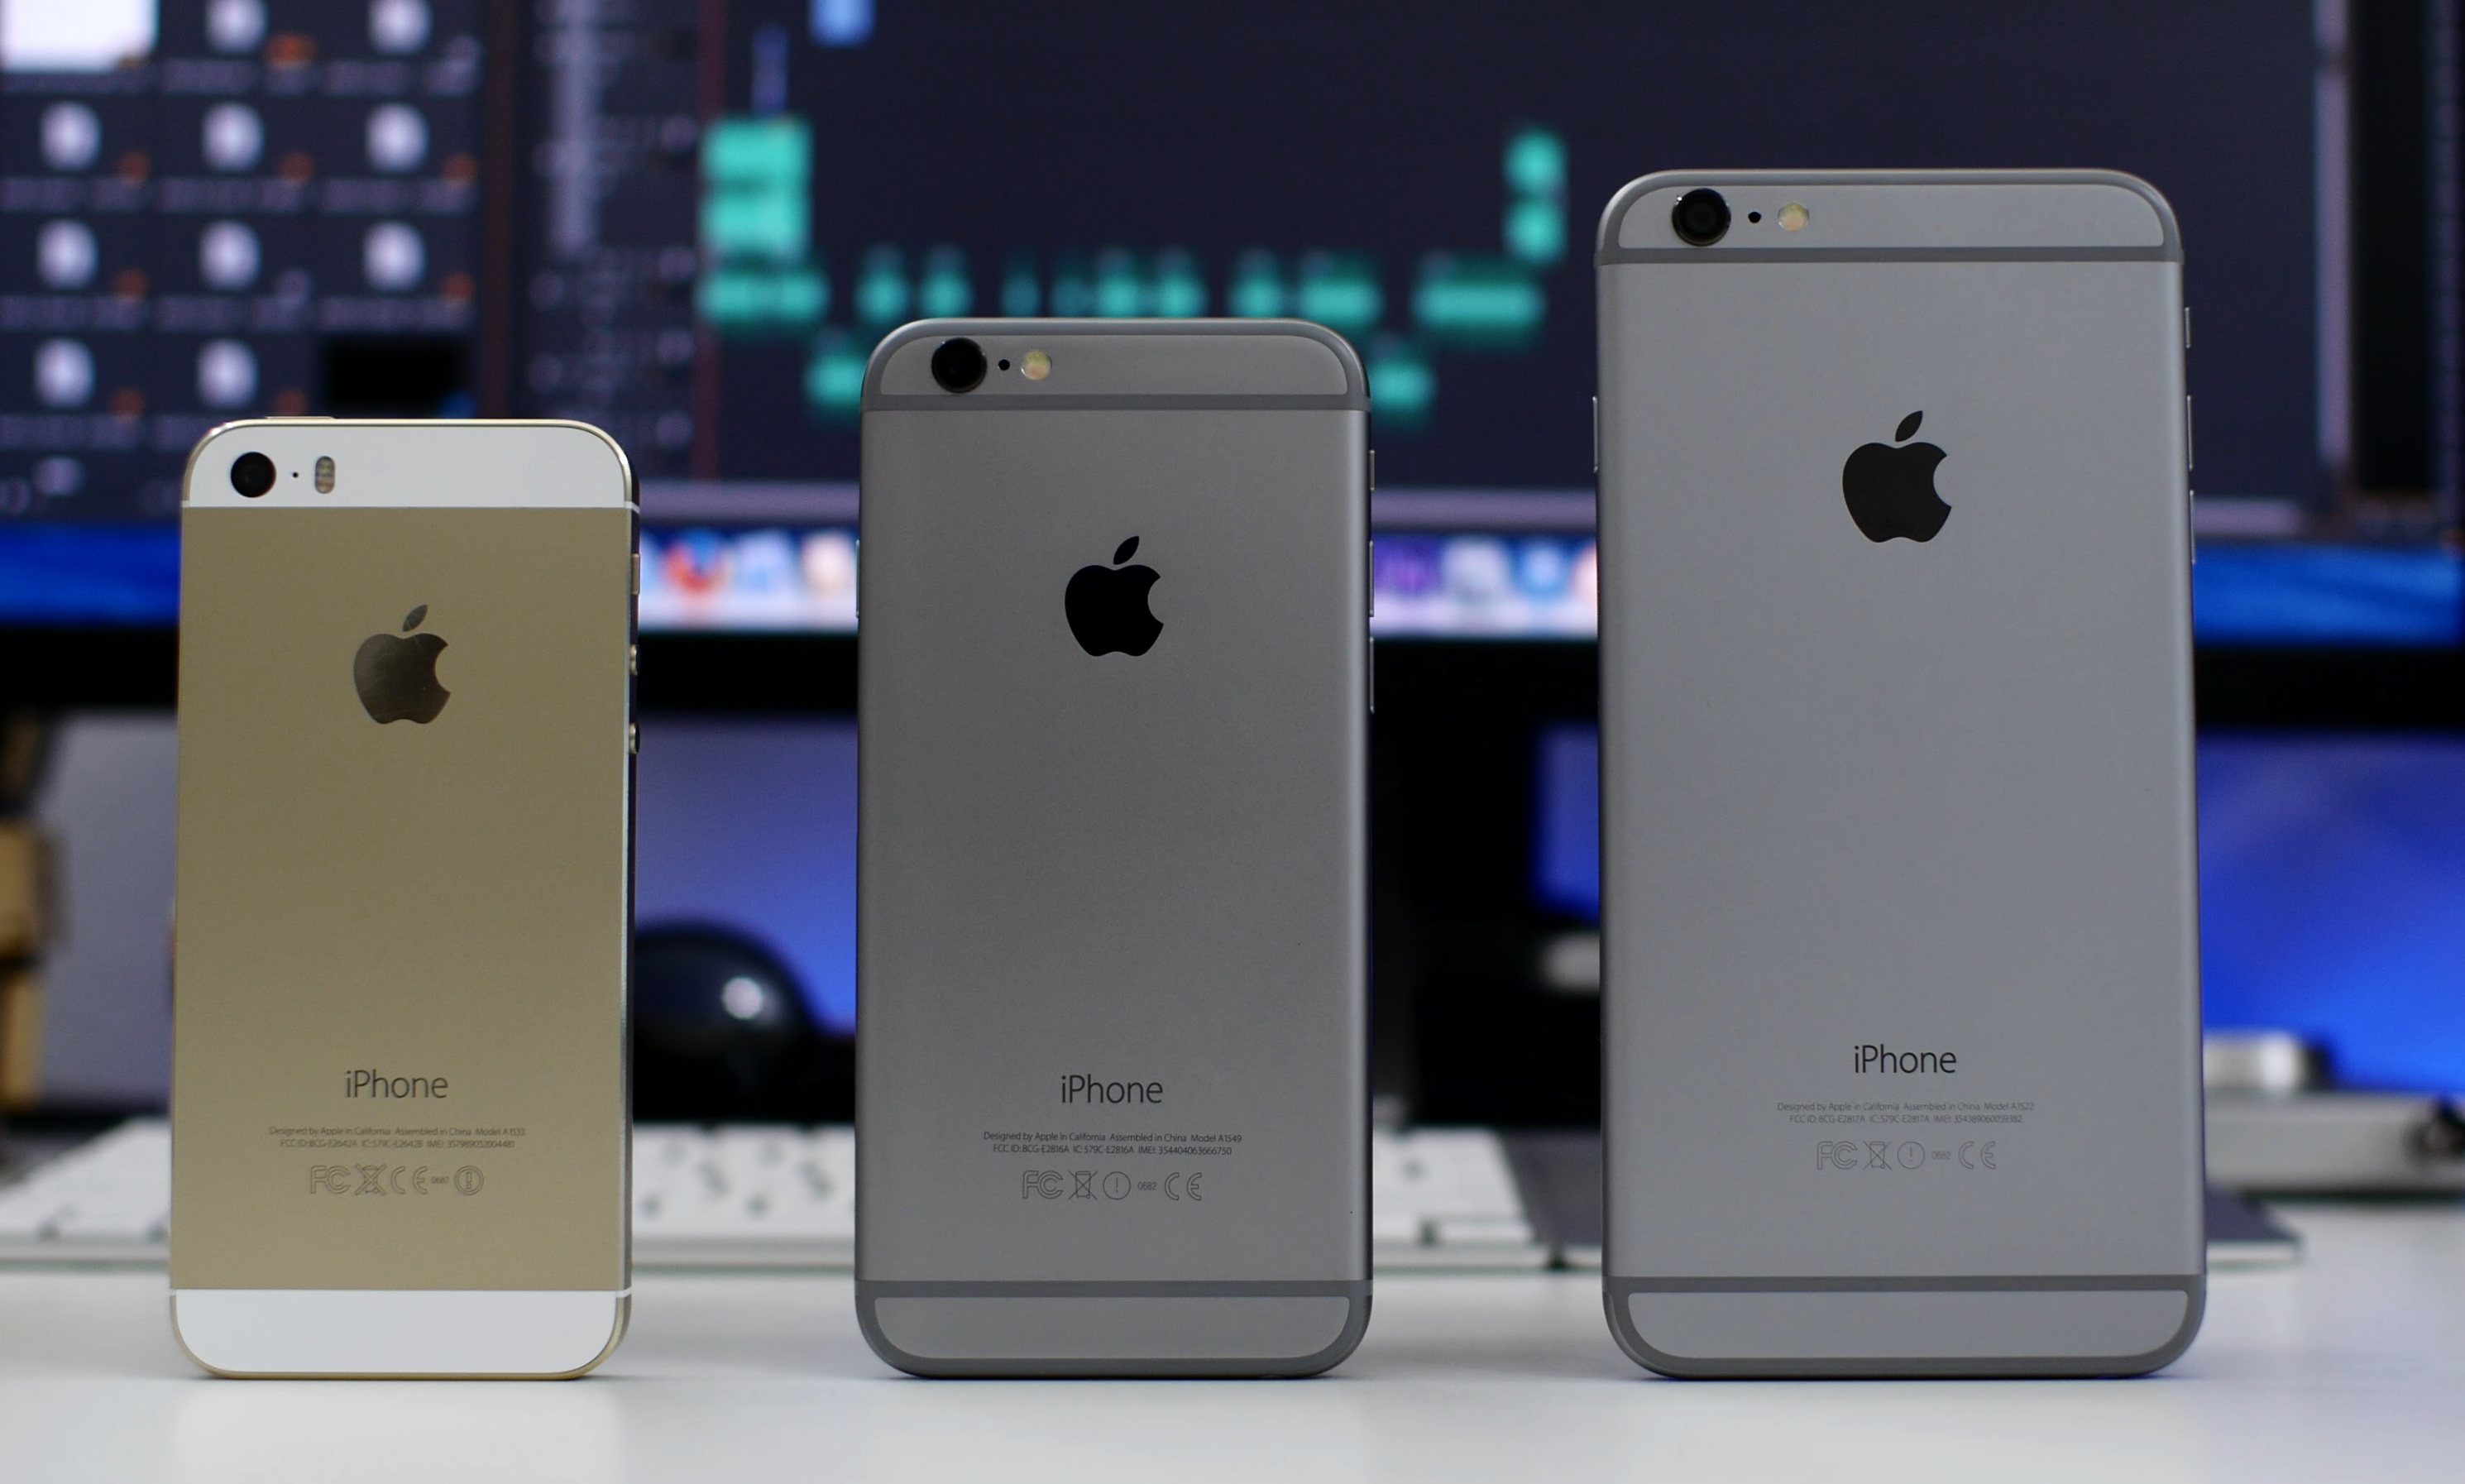 Review: Two weeks with Apple's iPhone 6 and iPhone 6 Plus ...